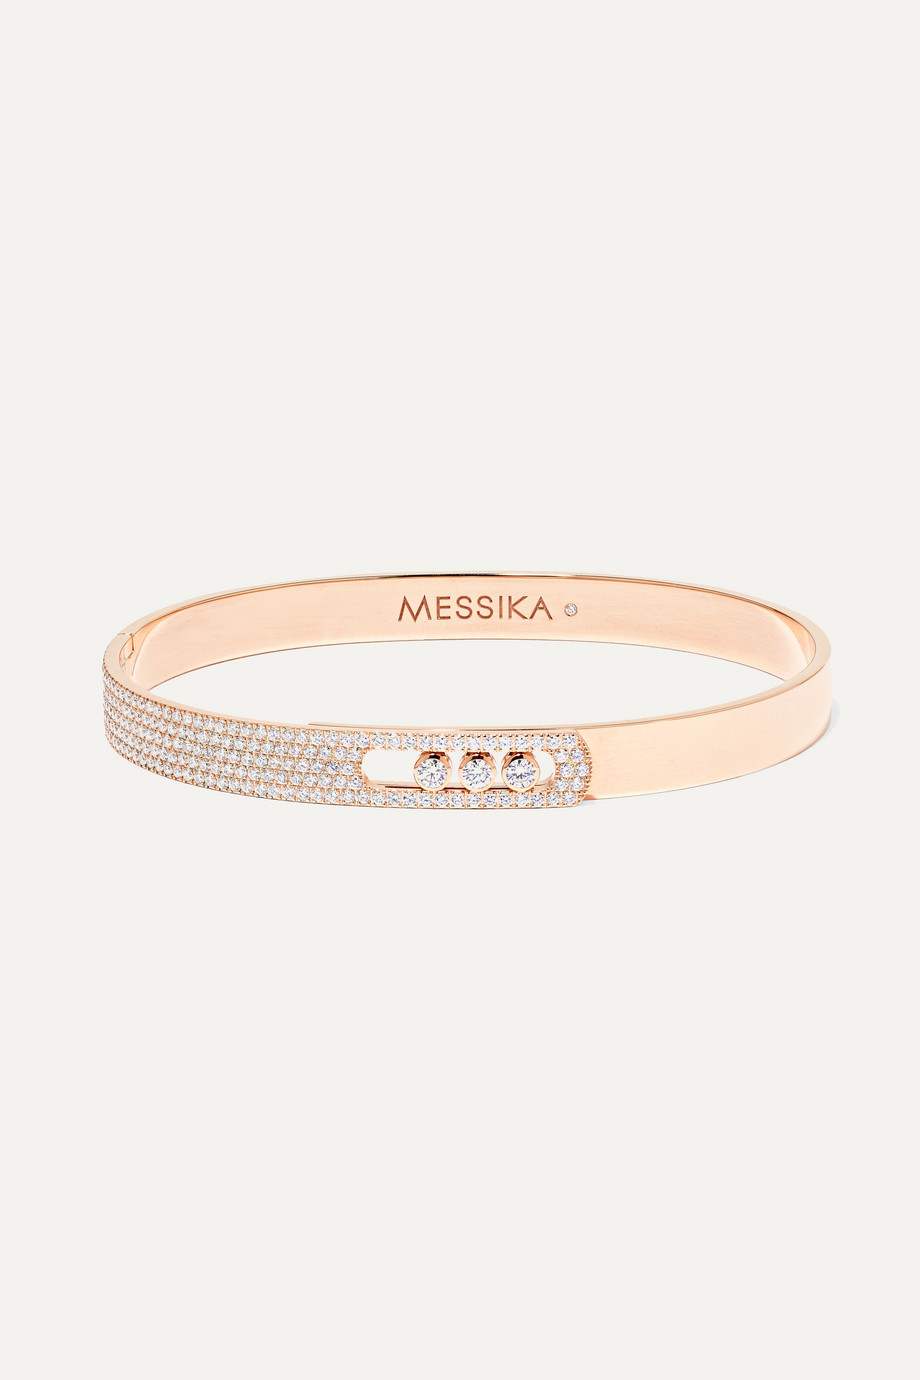 Messika Bracelet jonc en or rose 18 carats et diamants Move Noa